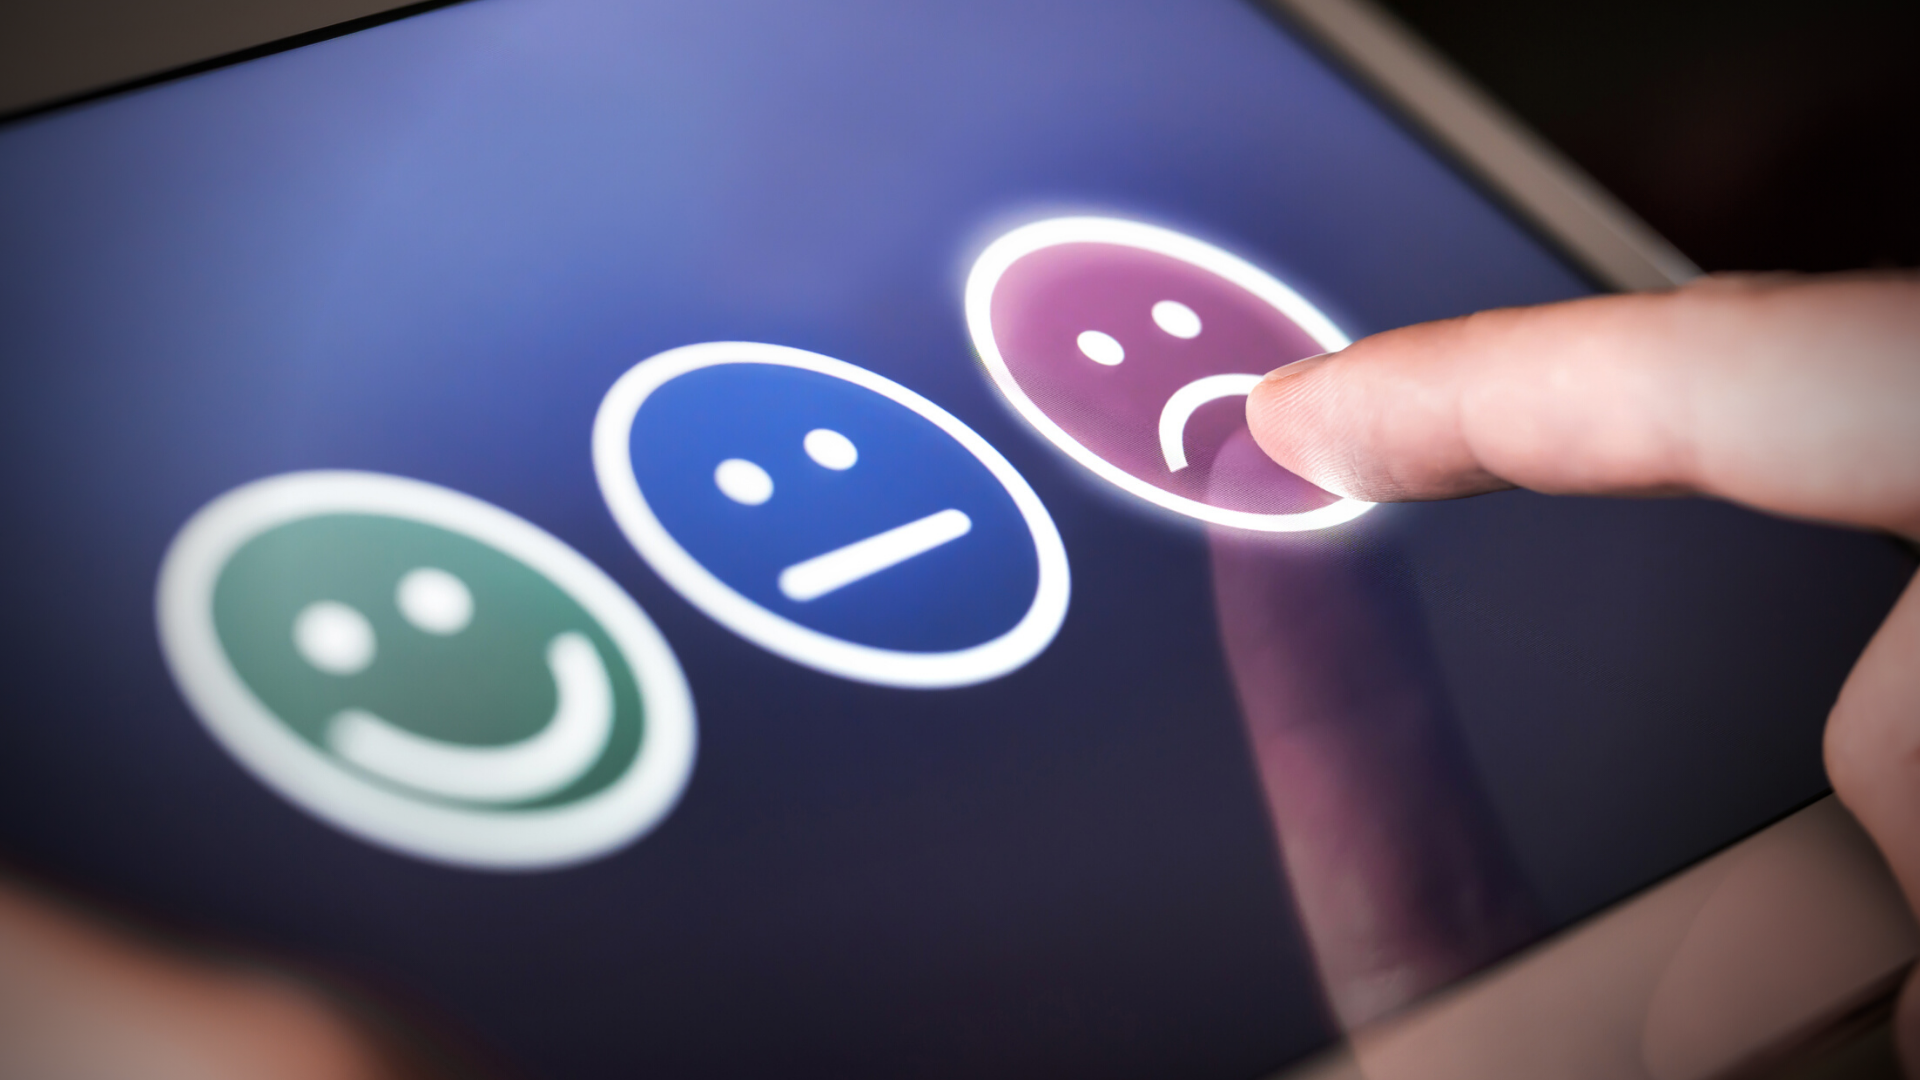 How To Deal With Negative Social Media Comments